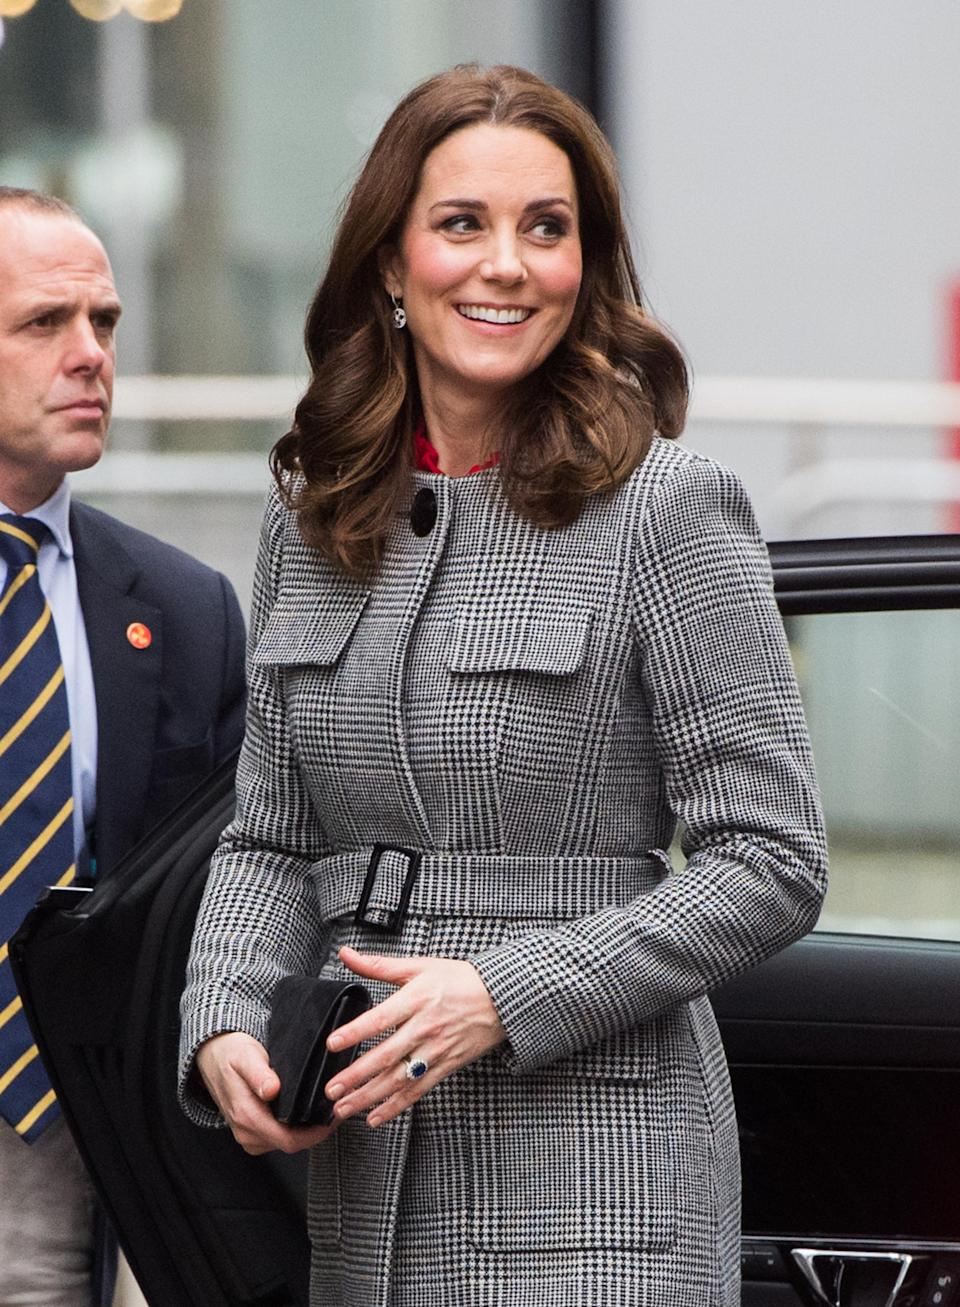 <p>Both the Duchess of Cambridge and the Queen are always seen wearing neutral-coloured nail polish, but this is likely not due to personal choice and more about royal etiquette. Royal wardrobe rules state that no coloured nail polish should be worn during public engagements.</p>